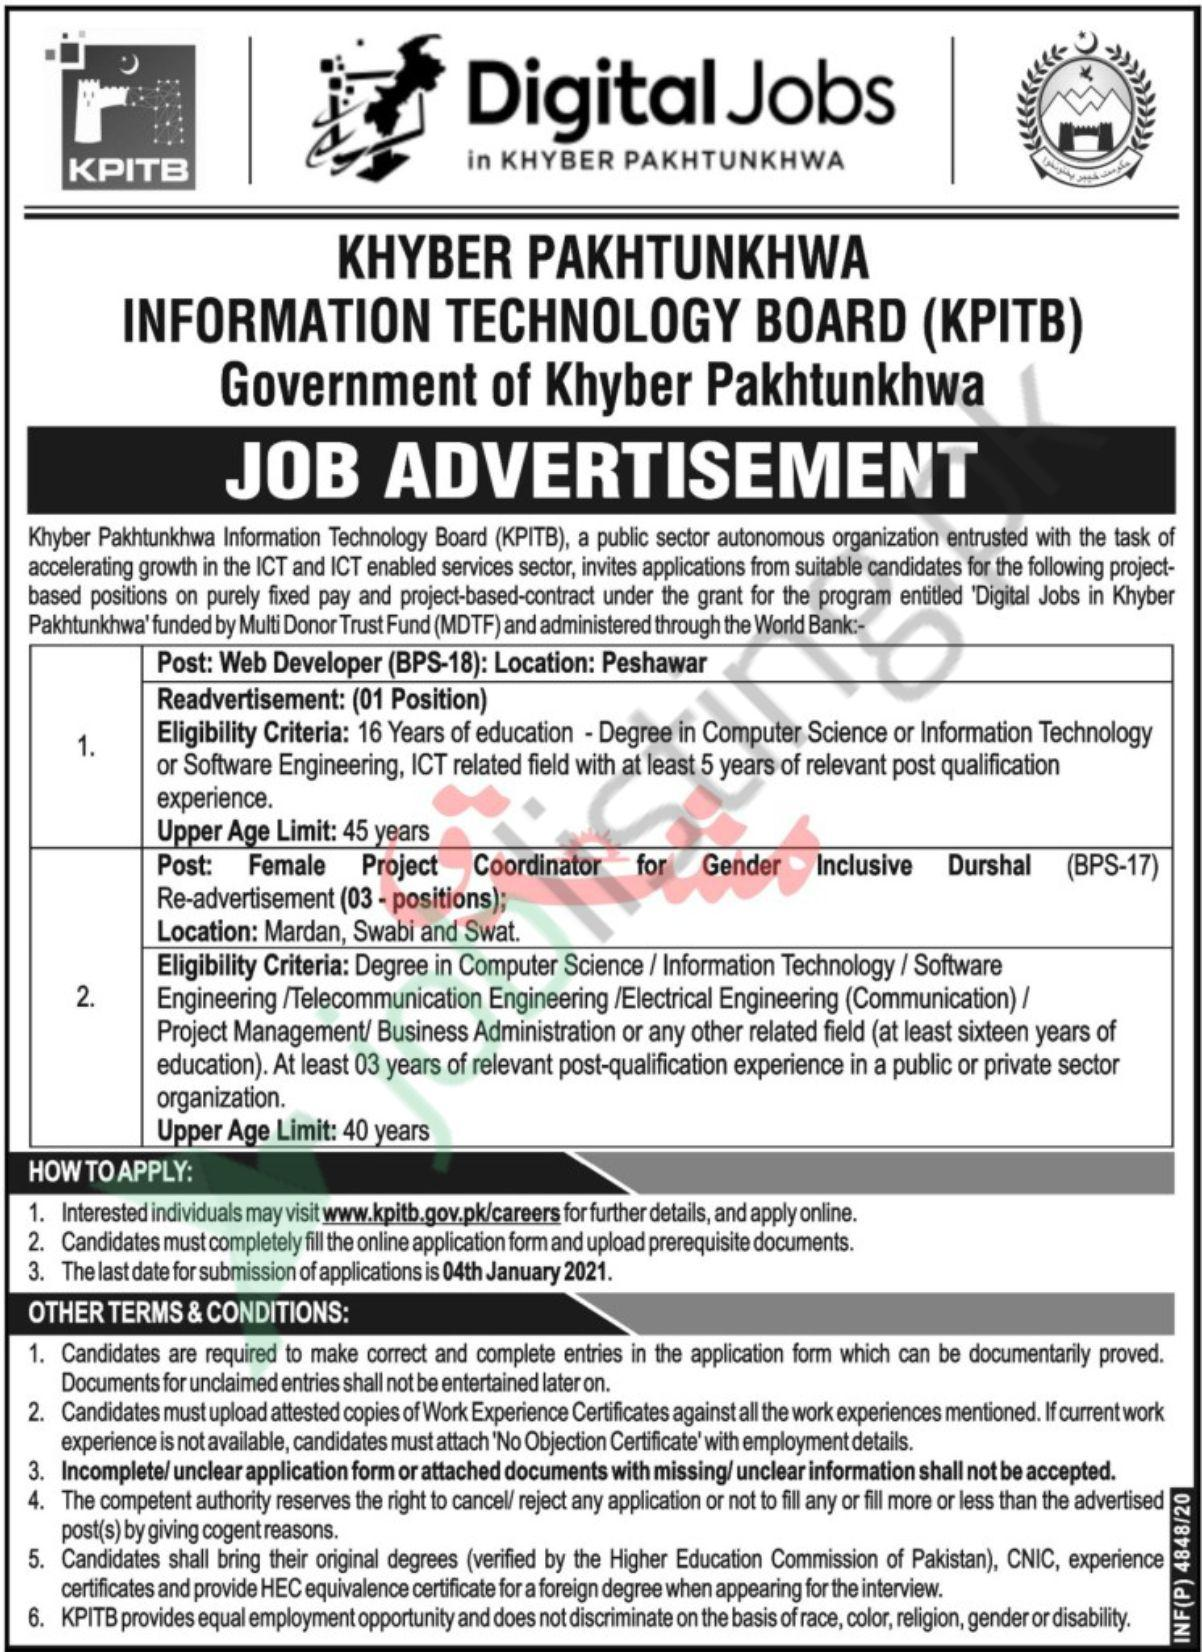 Khyber Pakhtunkhwa (KP) IT Board Jobs 2021 for Web Developer